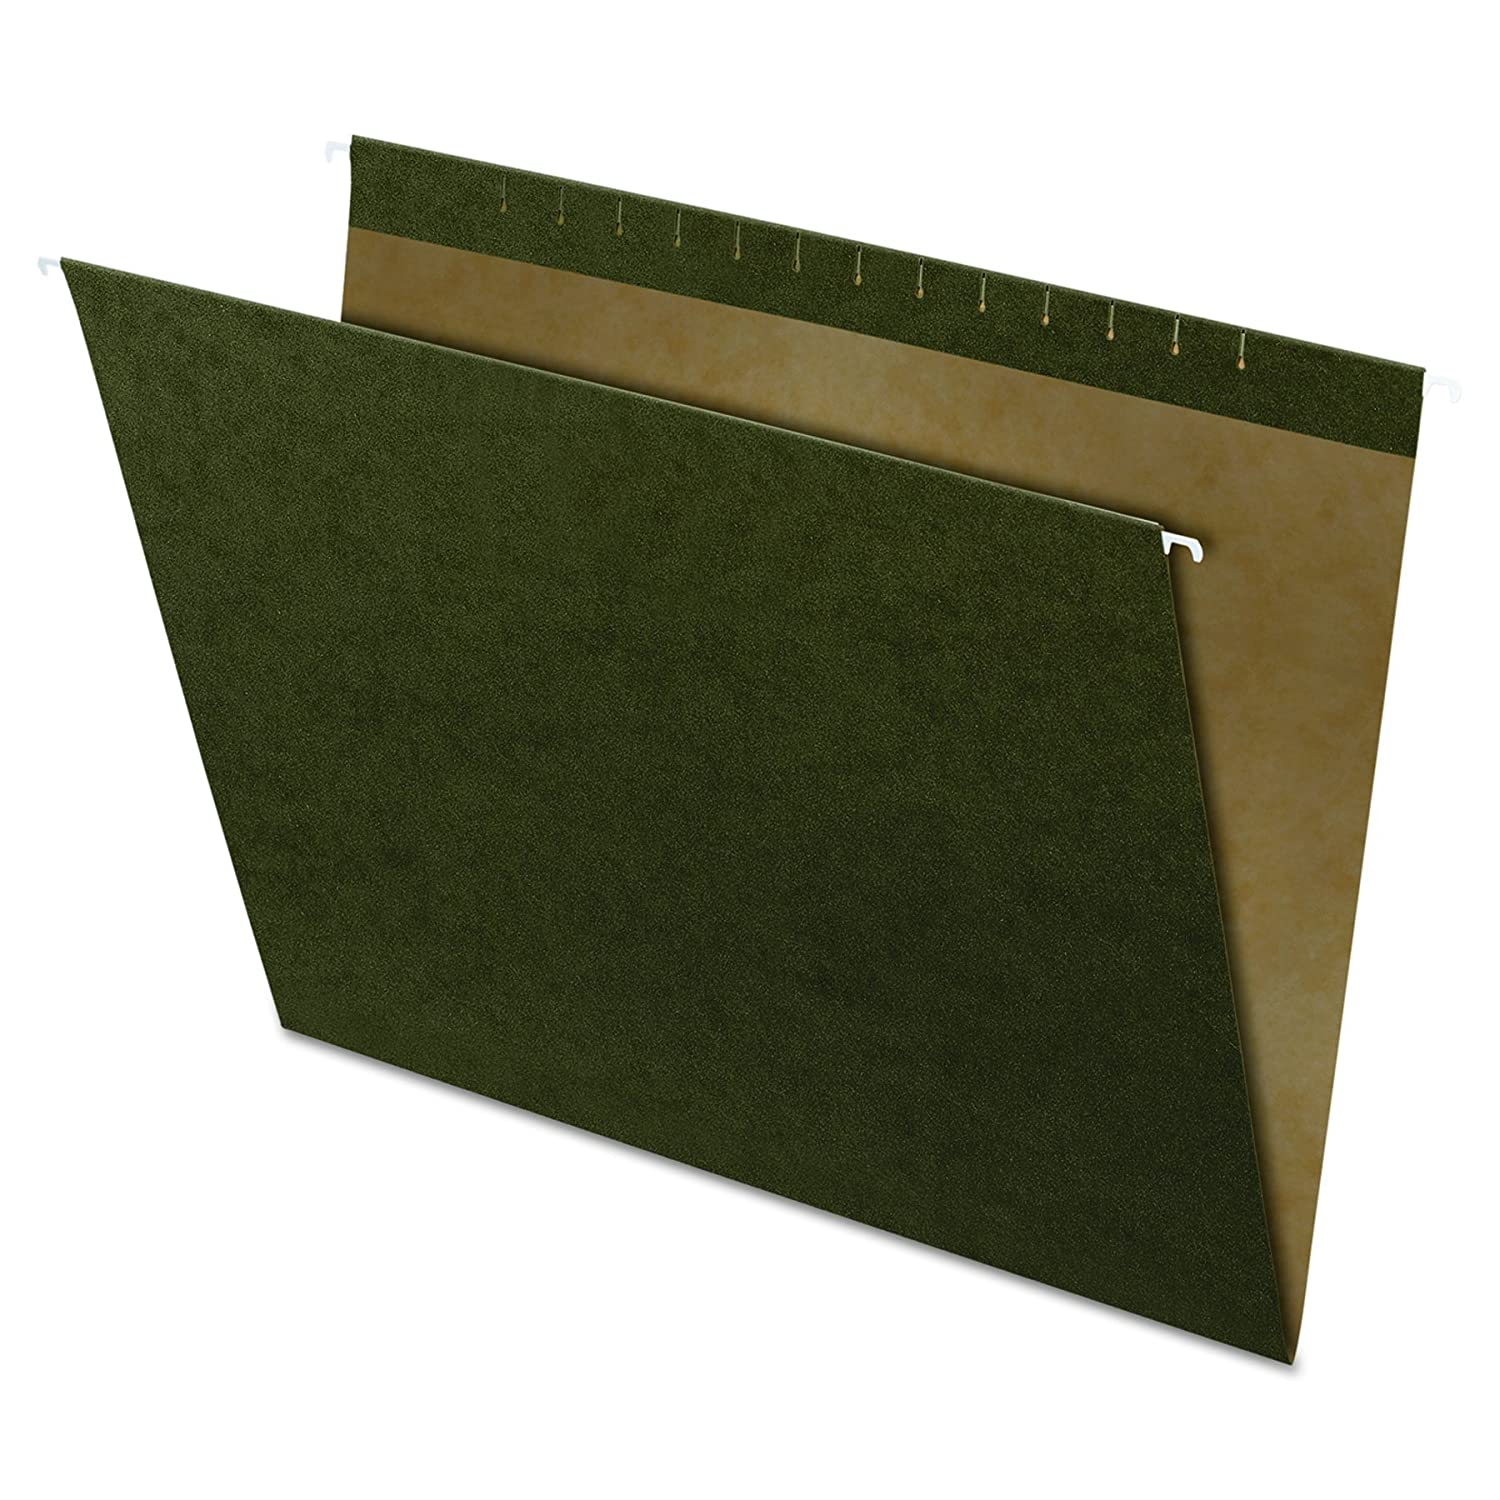 Pendaflex X-ray Size Reinforced Hanging File Folders, 14x18, No Tab, Green, 25 Per Box,(4158) Esselte Corporation 4158EE